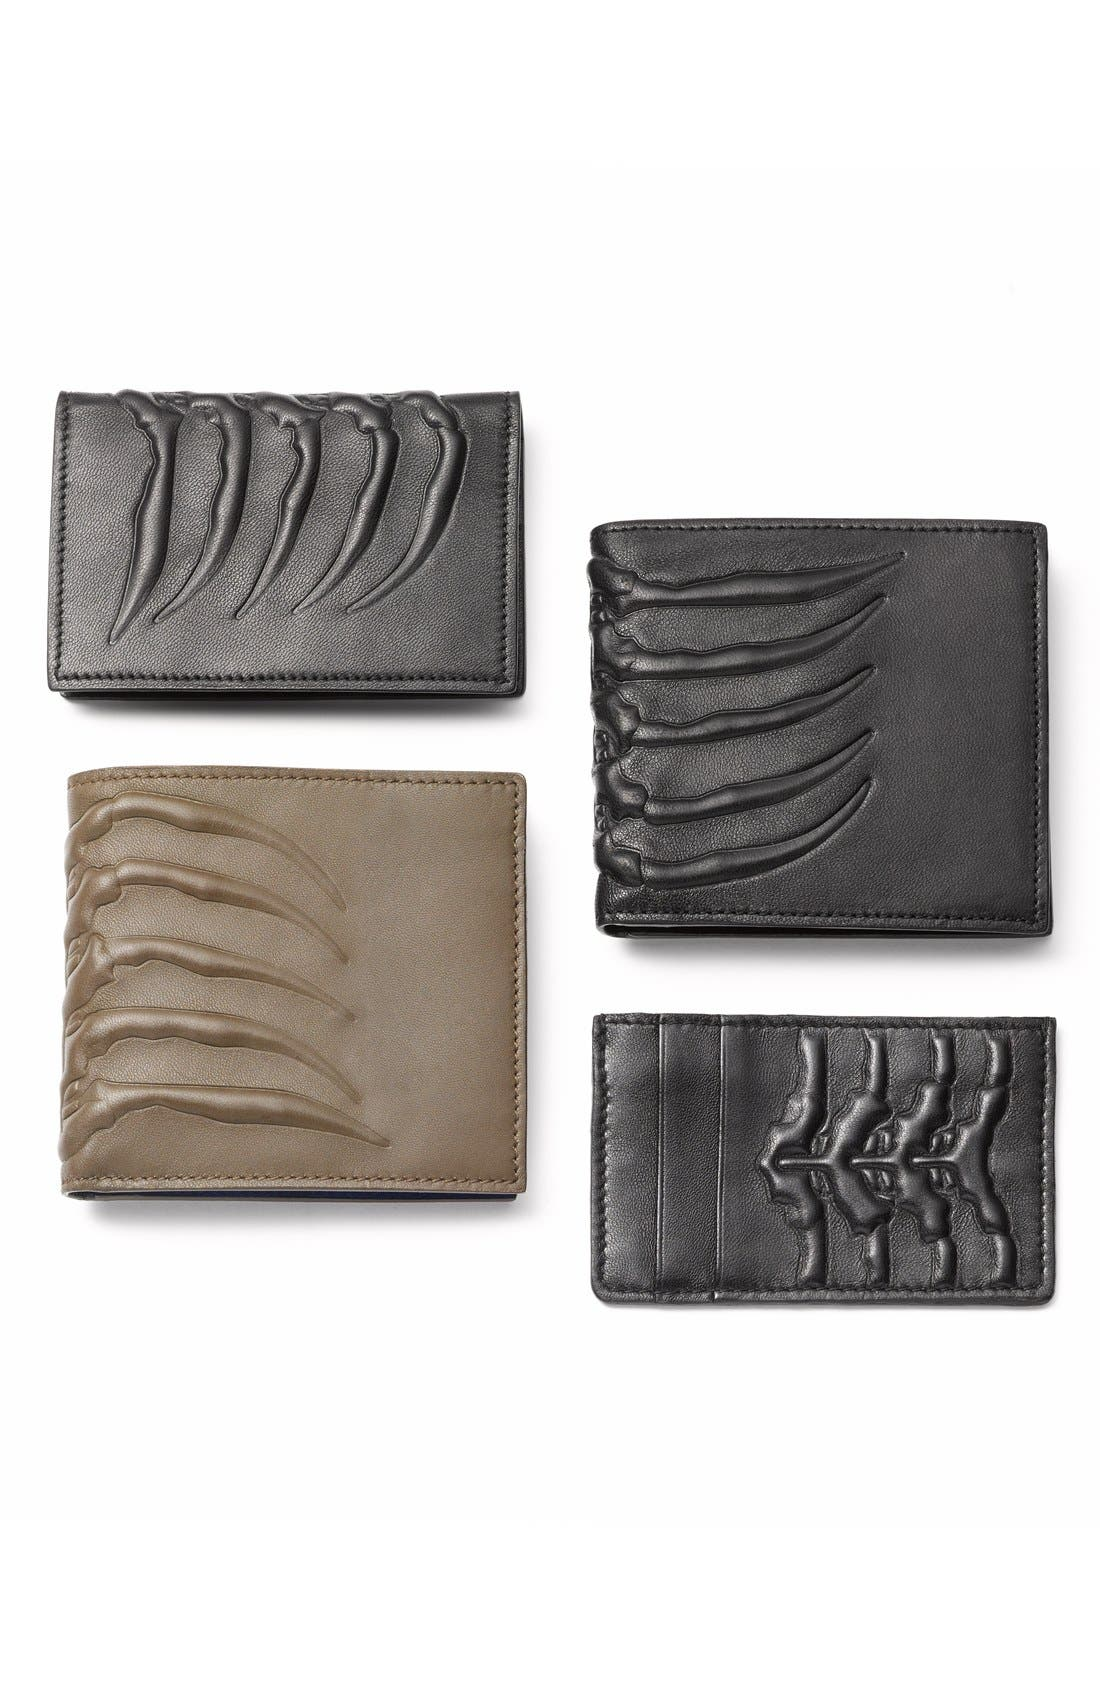 Rib Cage Leather Card Holder,                             Alternate thumbnail 3, color,